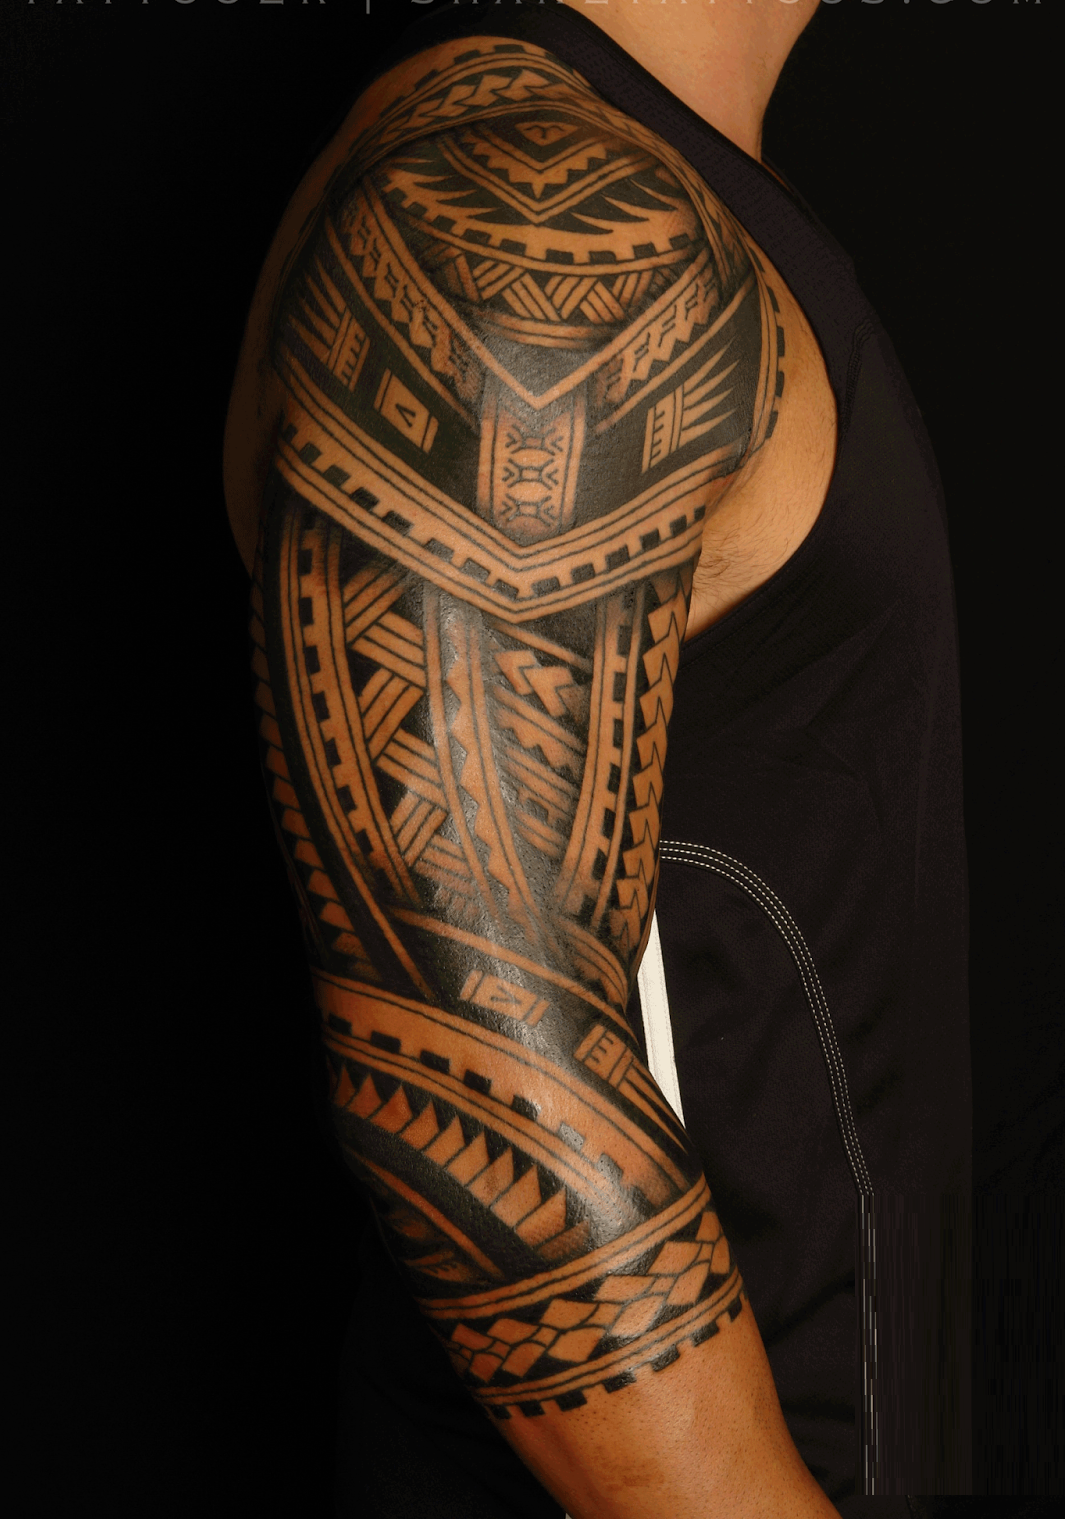 faux tatouage maori arms tattoo tattoos samoan tattoo tatau tattoo. Black Bedroom Furniture Sets. Home Design Ideas